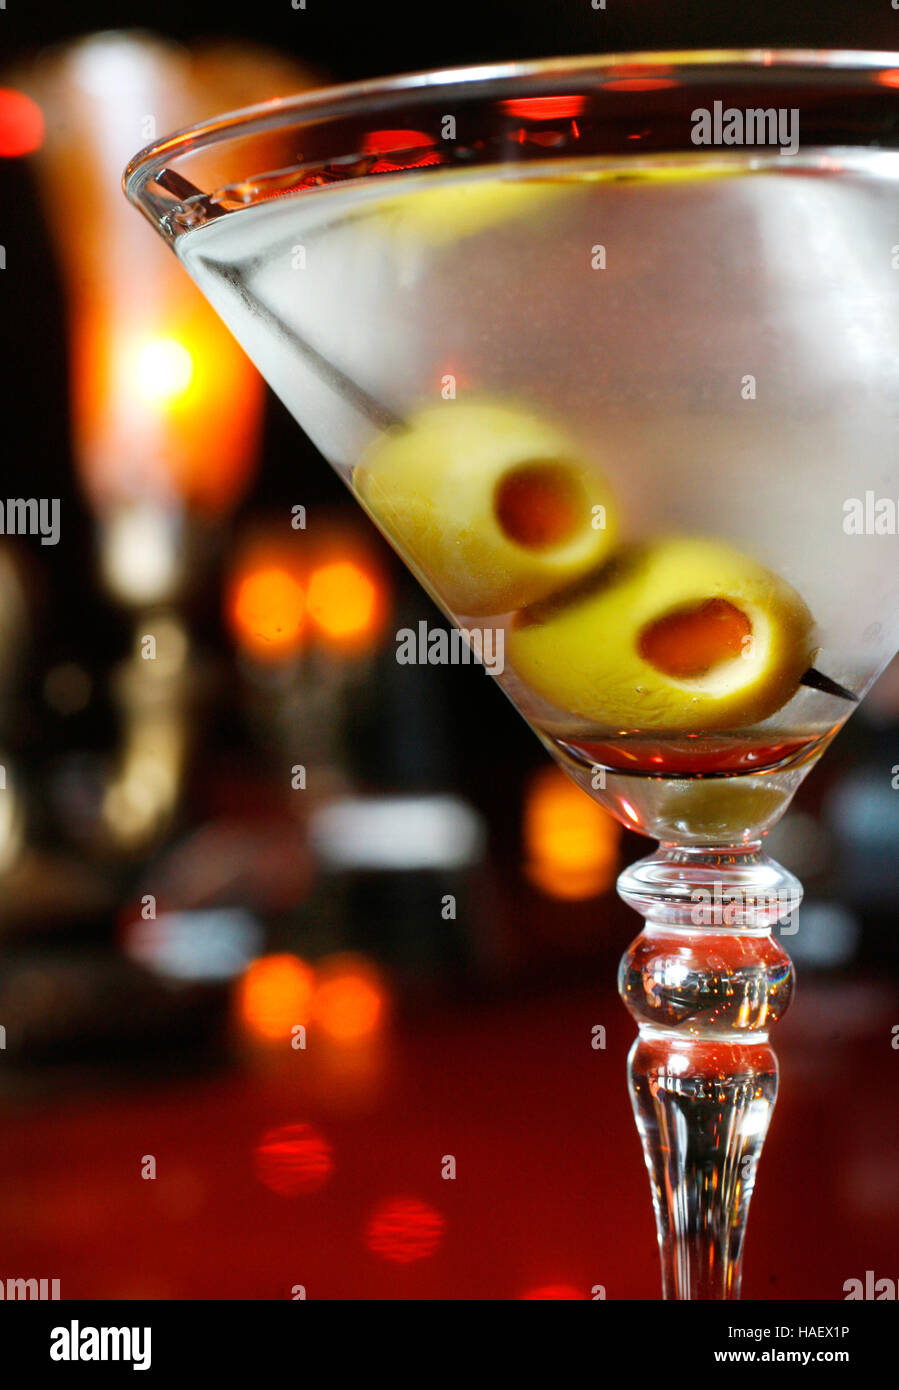 A martini with olives sits on a bar in a cocktail lounge. Stock Photo